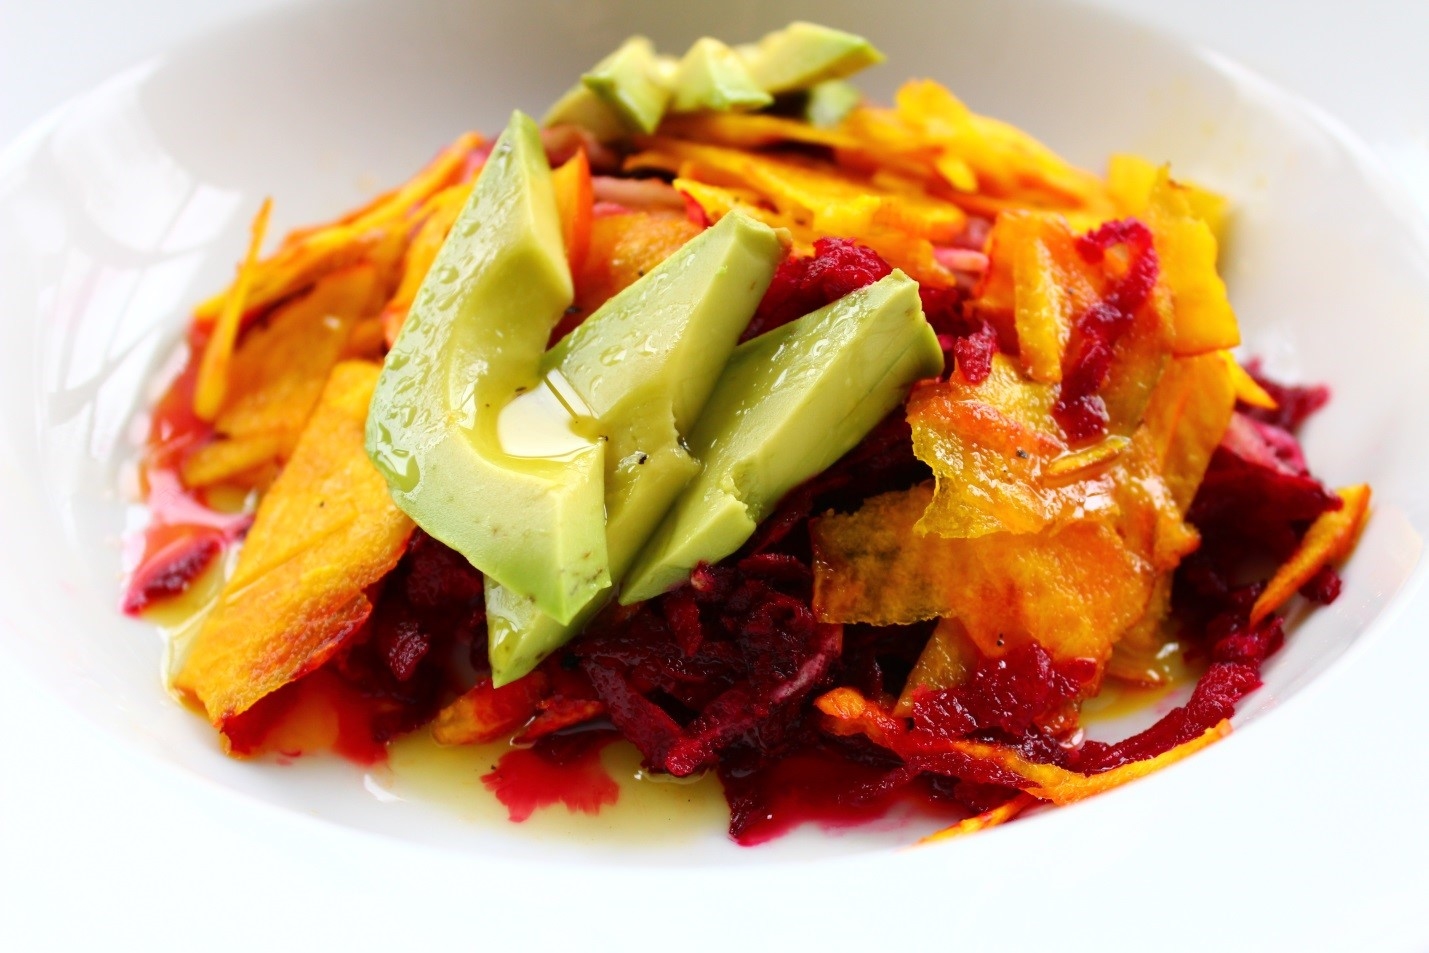 Tricolored Beet and Avocado Salad with a Spicy Honey Dressing.jpg